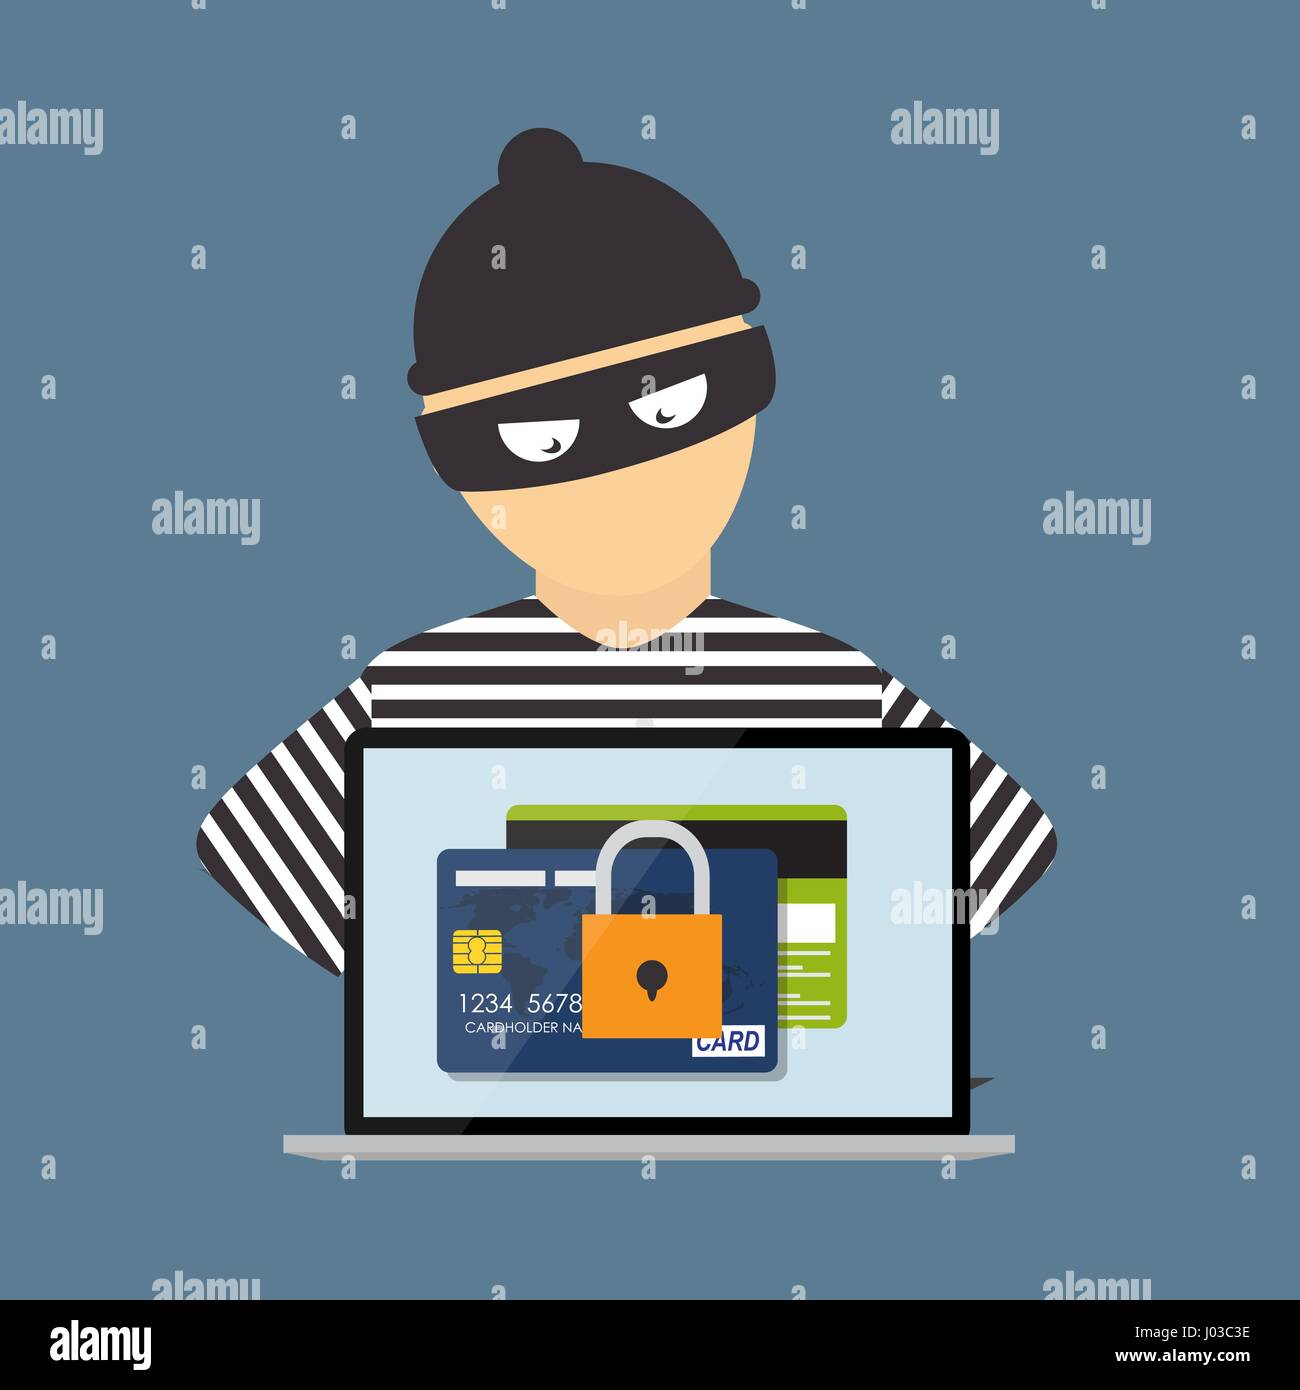 Criminal Hacker, Concept of Fraud, Cyber Crime. Vector Illustrat - Stock Image